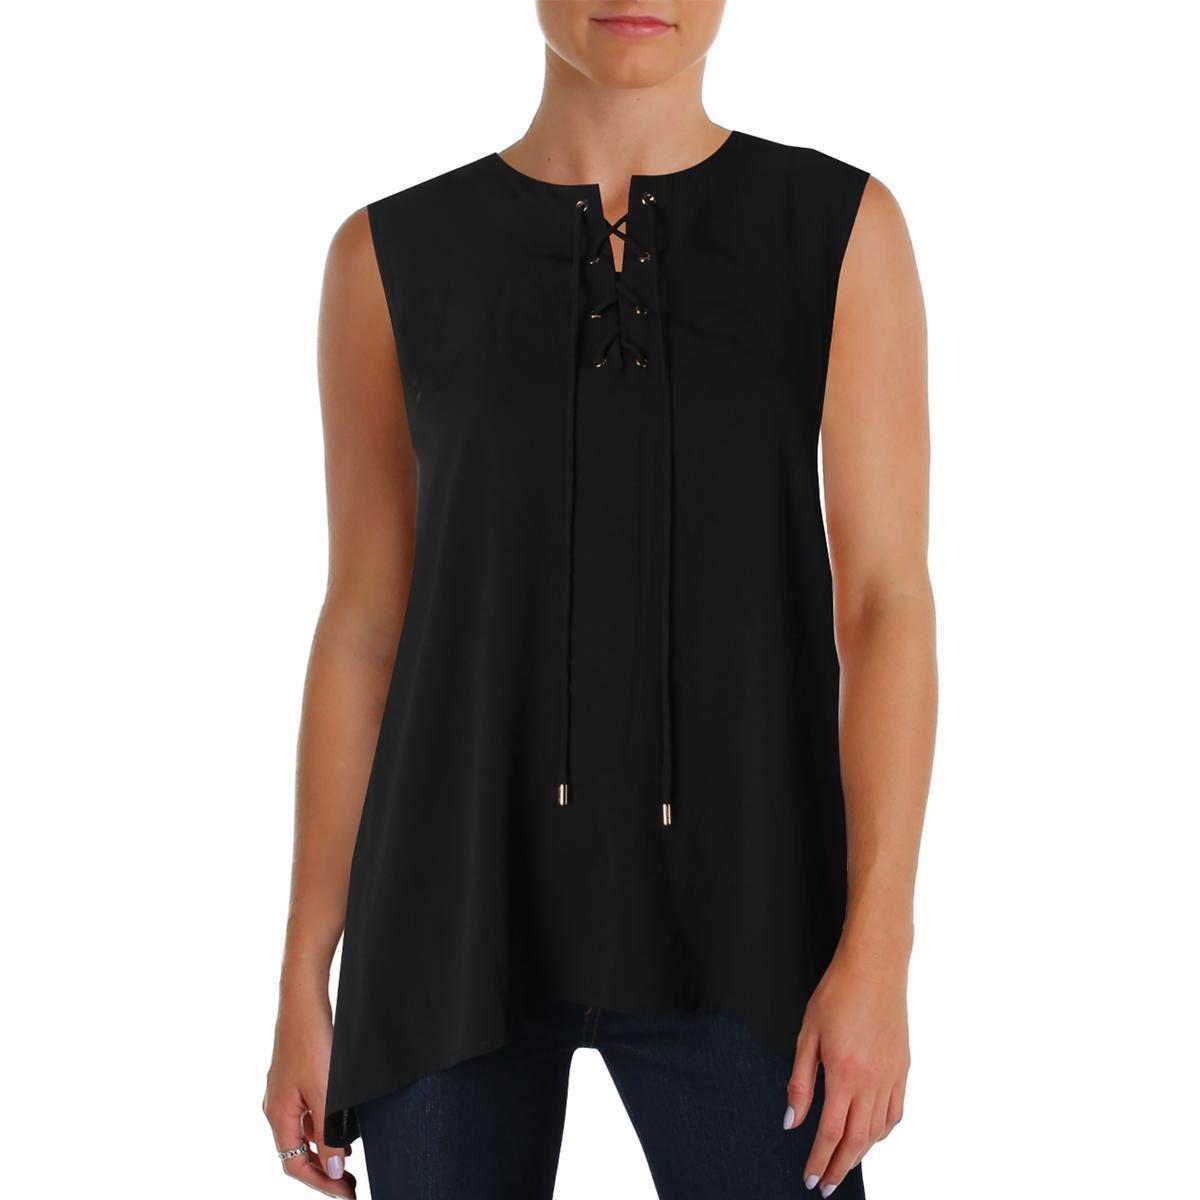 Calvin Klein Women's Black Grommet Lace Up Blouse Top Medium M